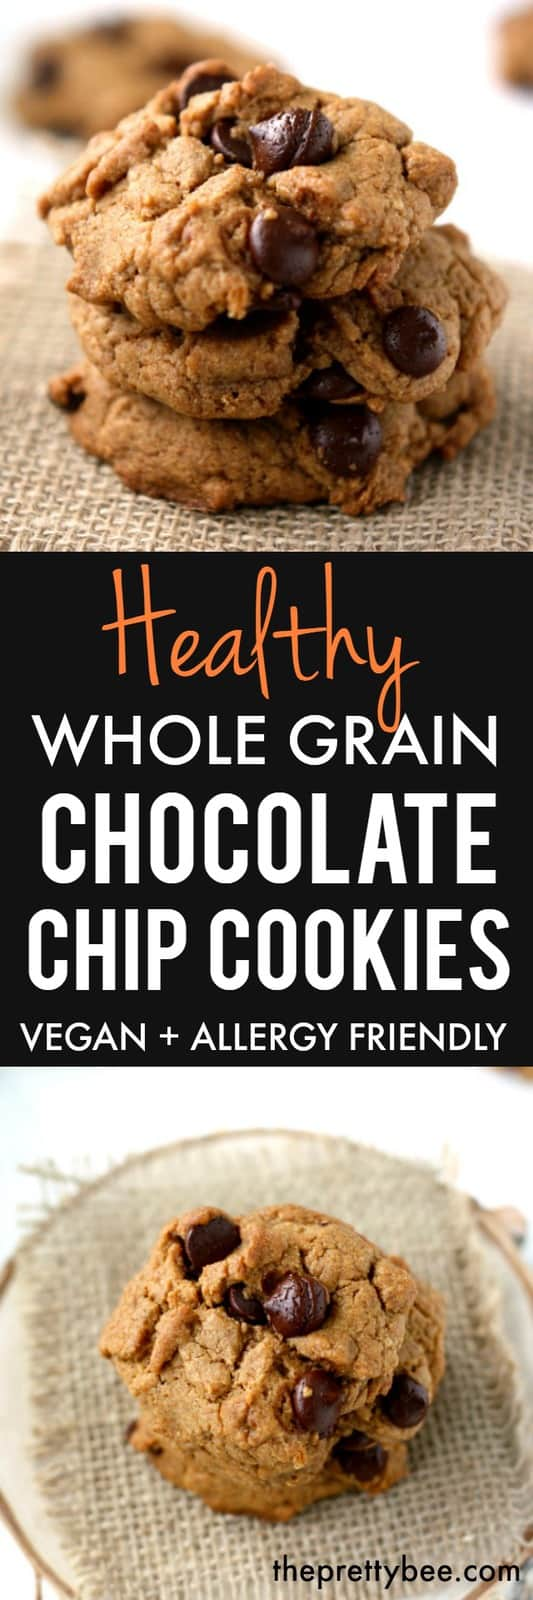 Healthy whole grain chocolate chip cookies are sure to be a crowd pleaser!